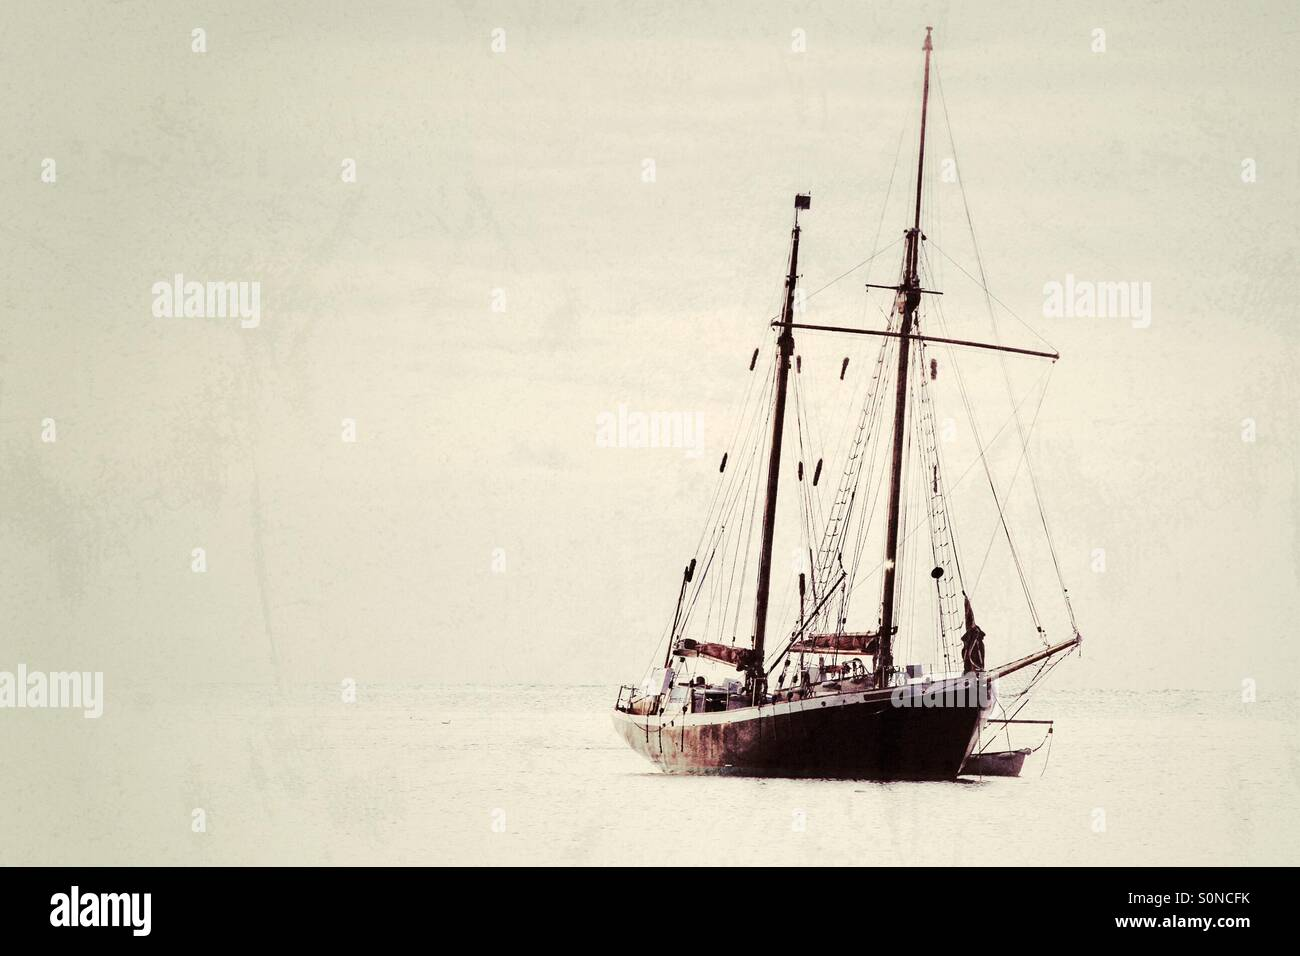 A single, twin masted yacht floating on a calm, flat Ocean. Stock Photo